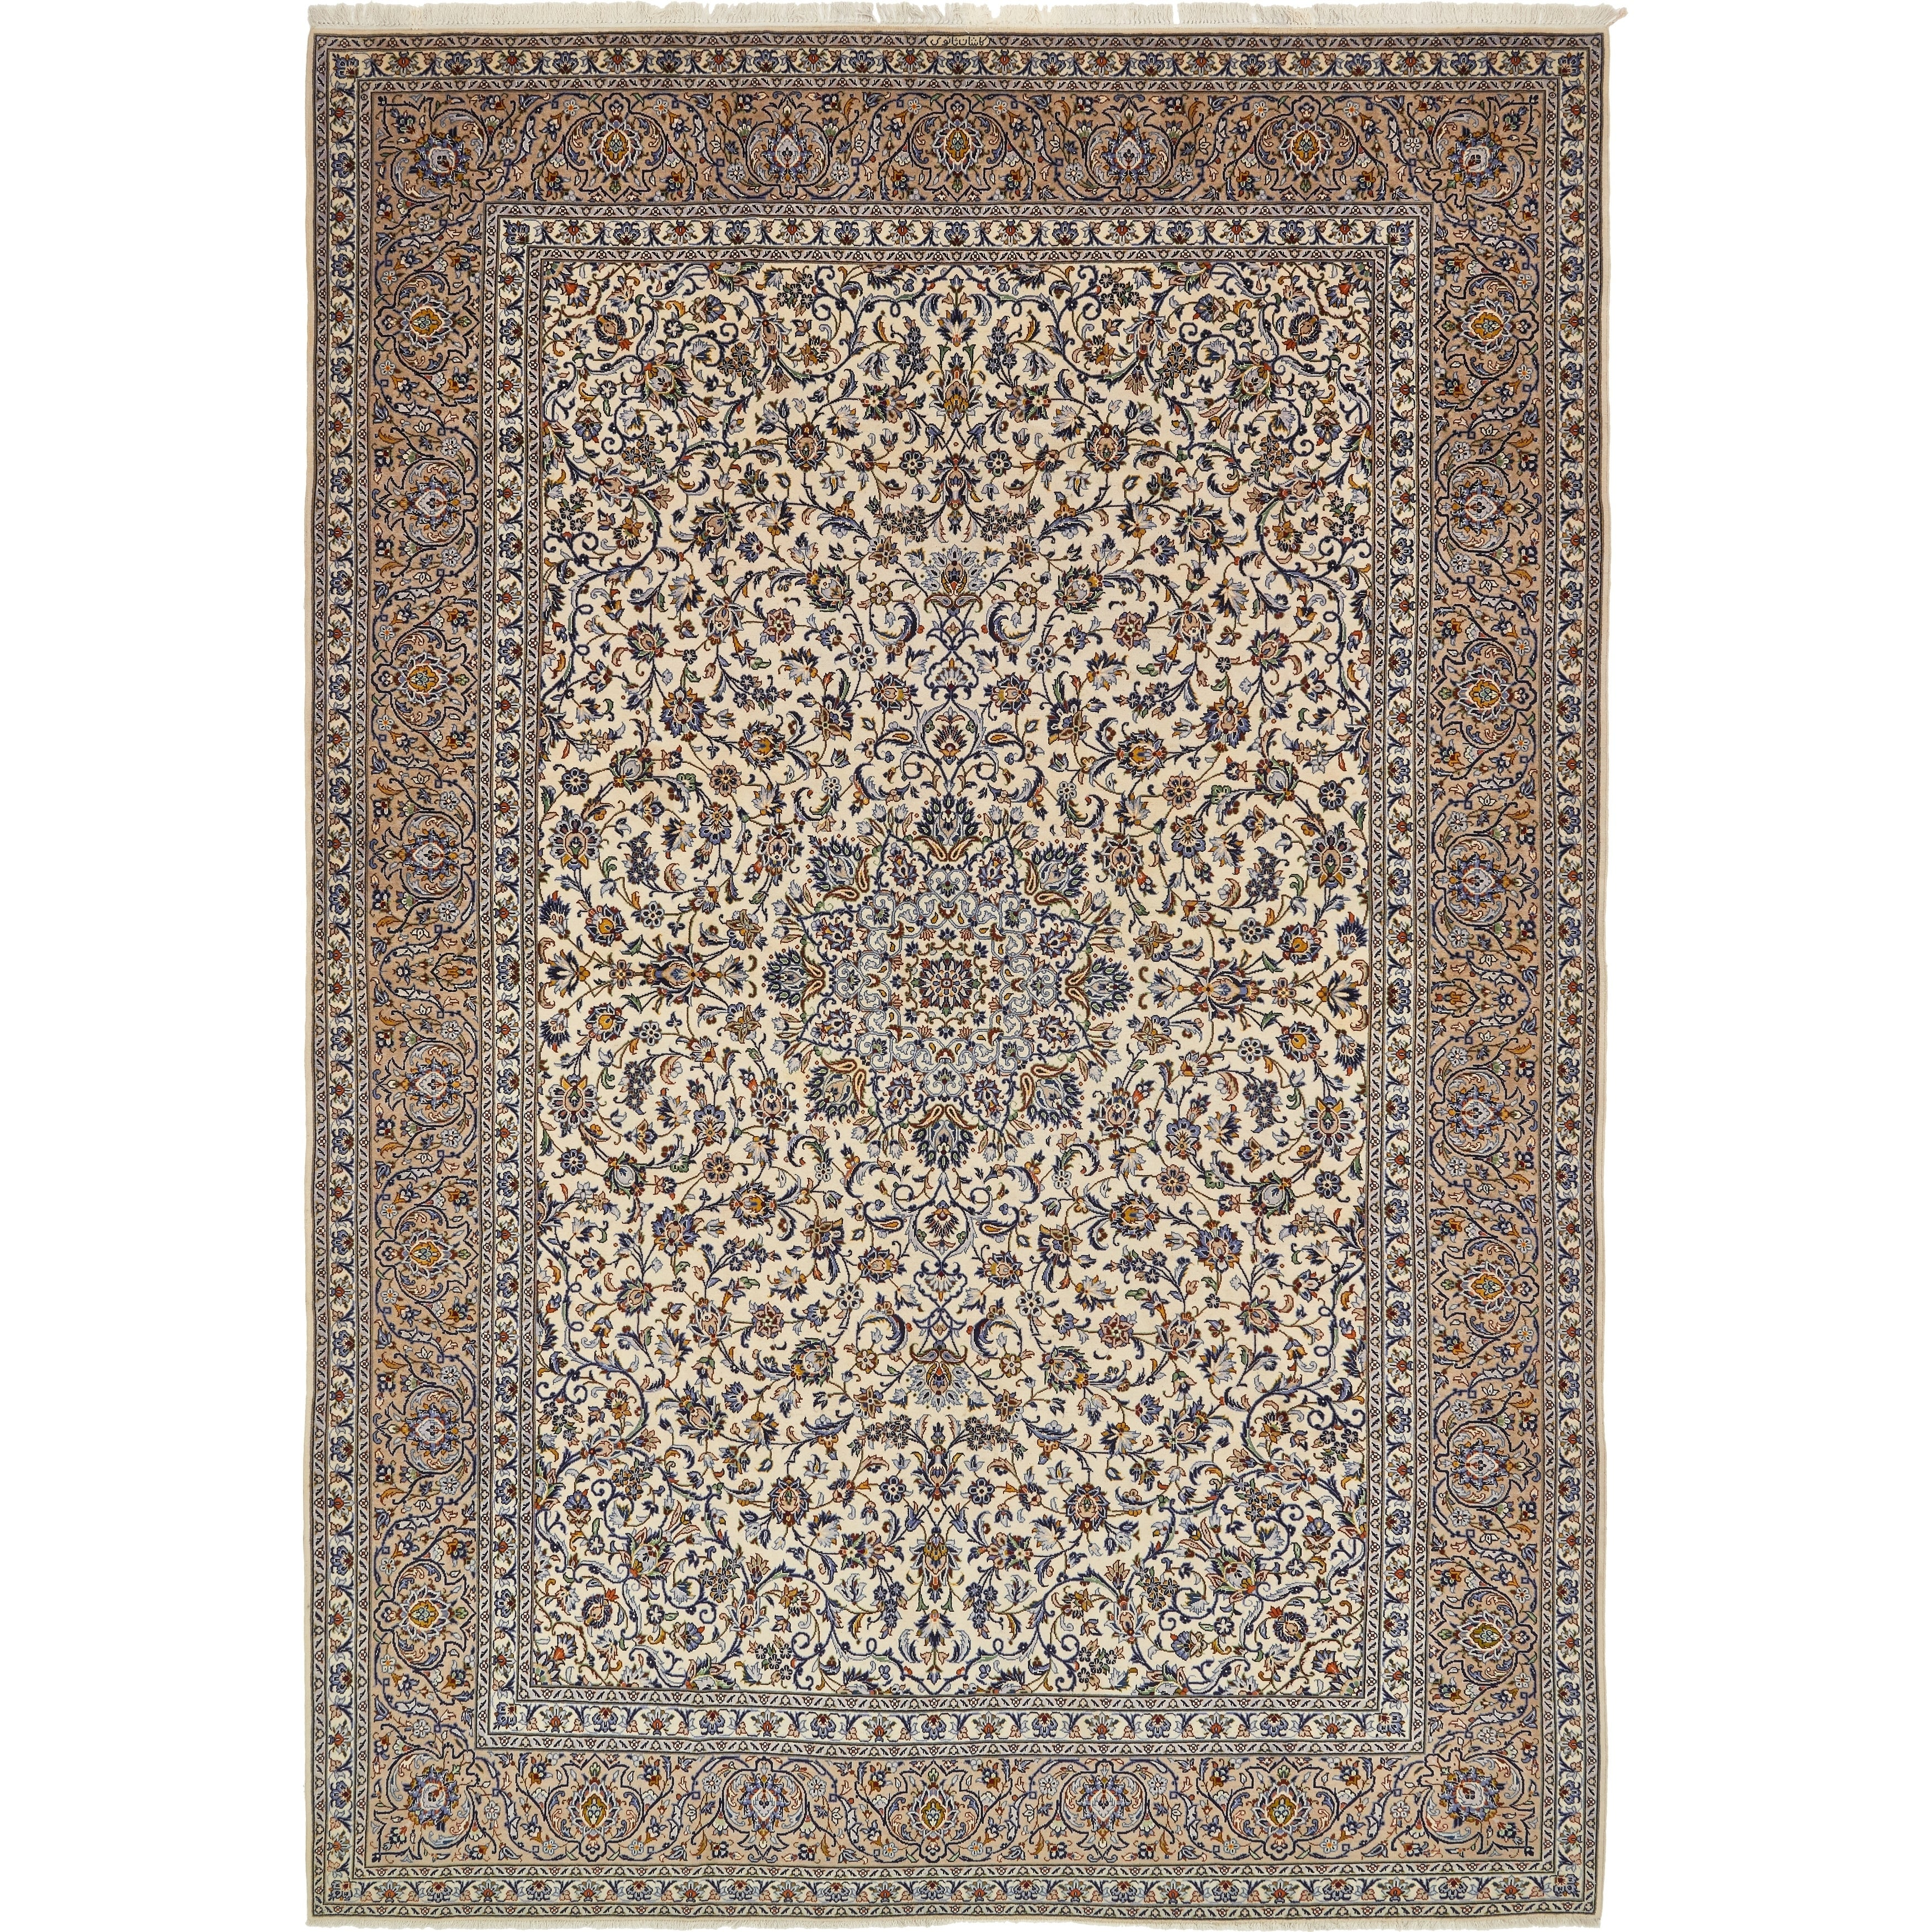 Hand Knotted Kashan Semi Antique Wool Area Rug - 11 3 x 16 4 (Ivory - 11 3 x 16 4)